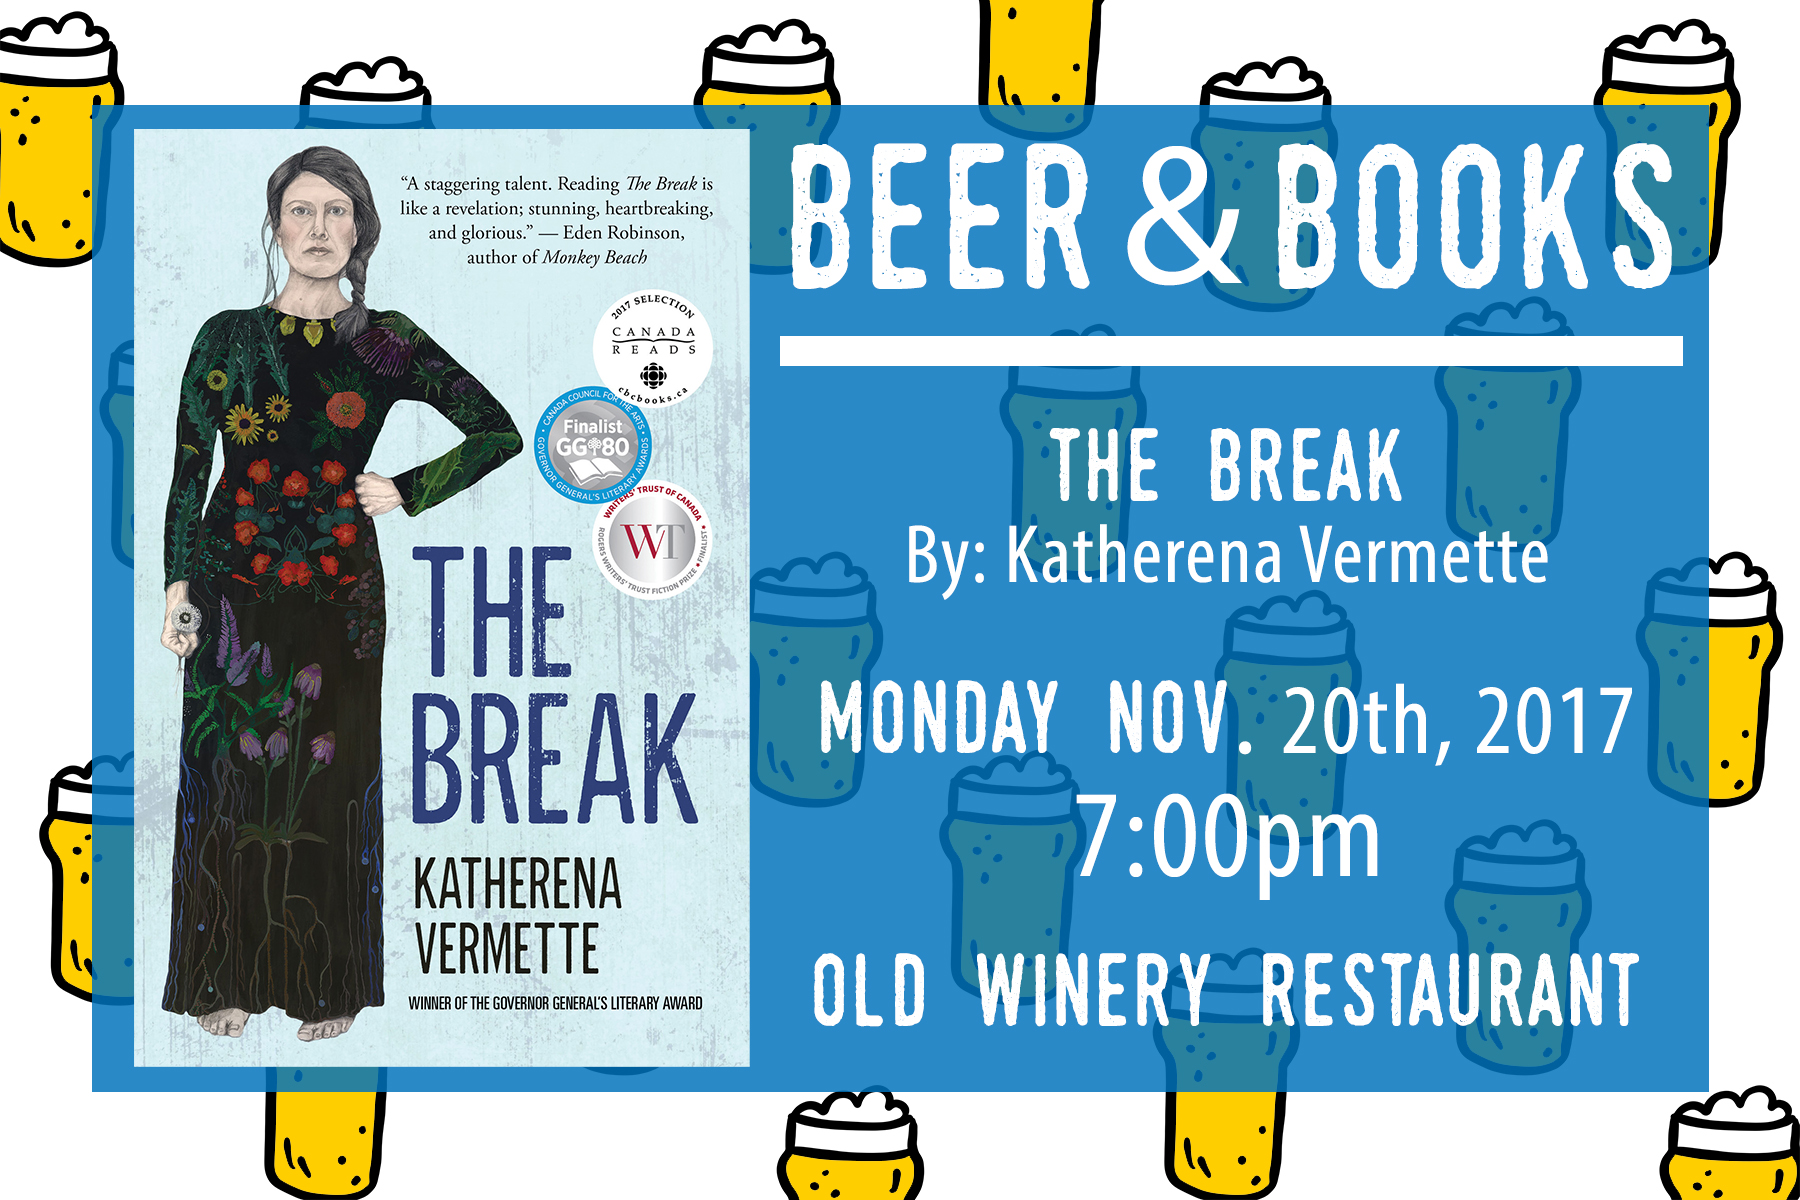 The Break Beer & Books